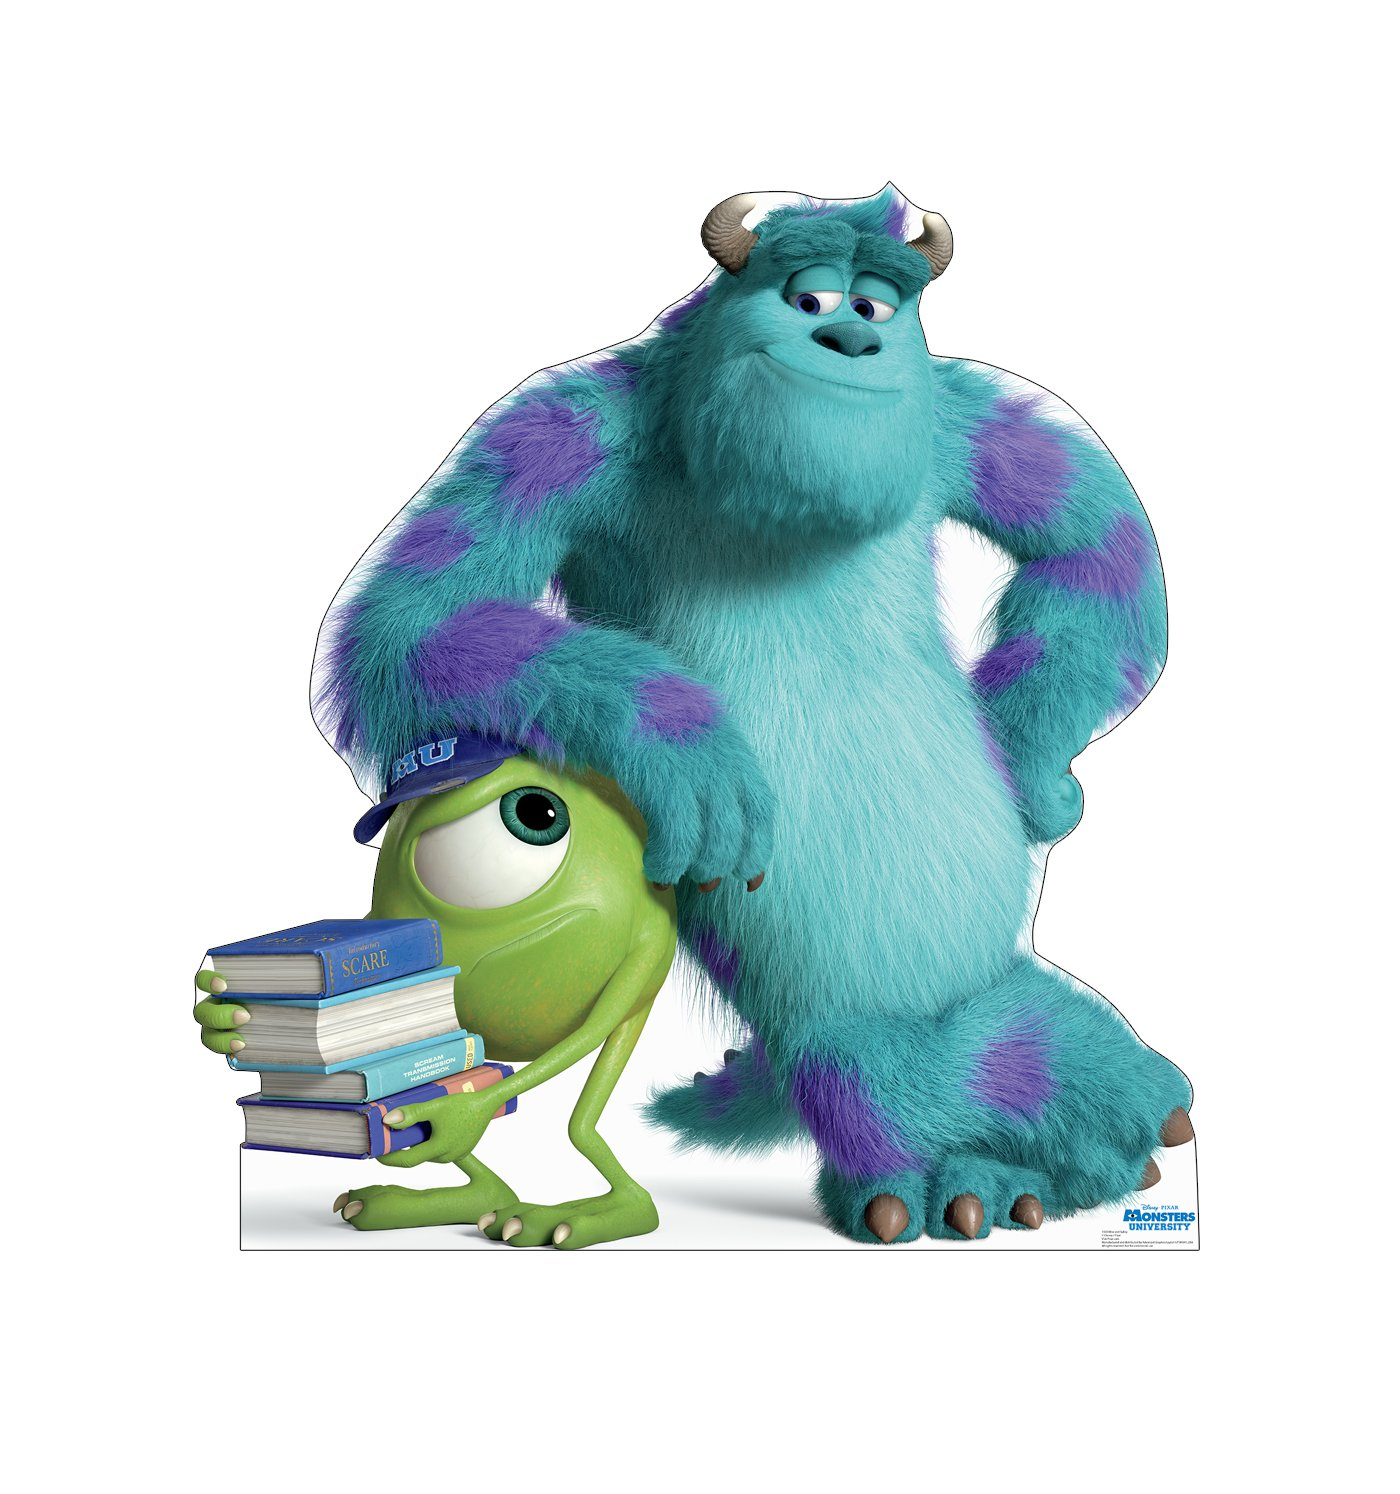 Advanced Graphics Mike & Sulley Life Size Cardboard Cutout Standup - Disney Pixar's Monsters University by Advanced Graphics